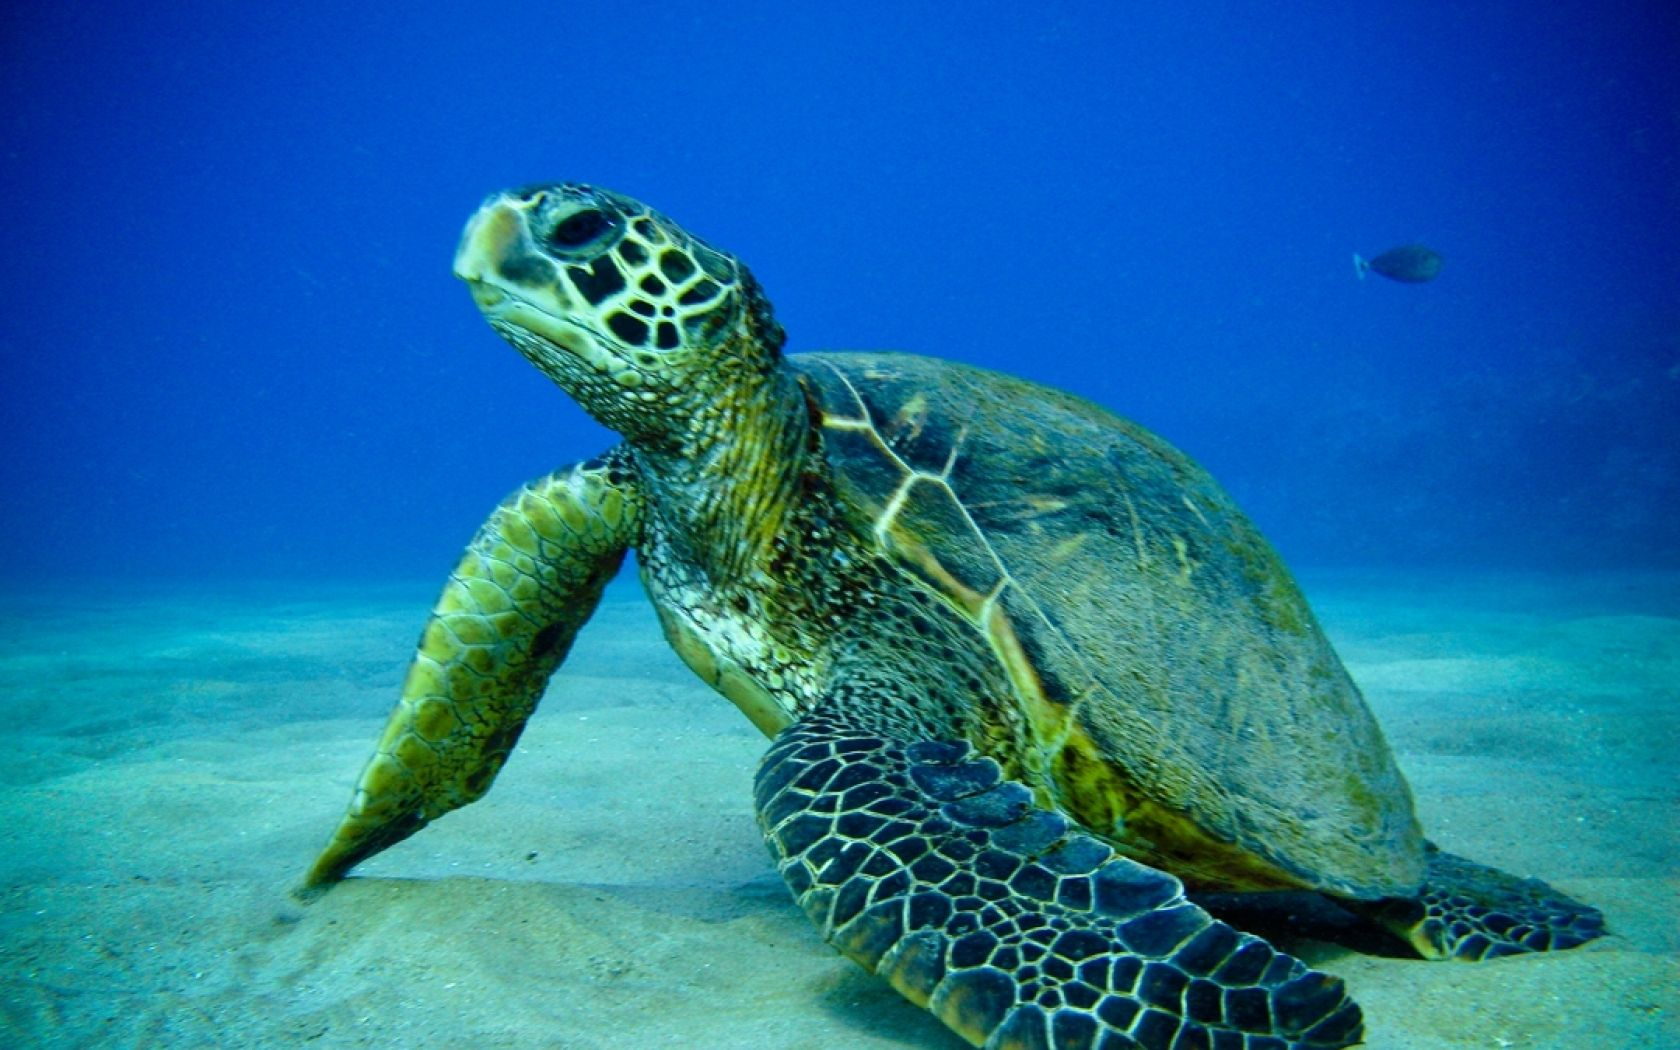 Image of: Deep Sea Wallpapers Abstract Turtle Ocean Animals Fish Turtles Sea Pinterest Wallpapers Abstract Turtle Ocean Animals Fish Turtles Sea